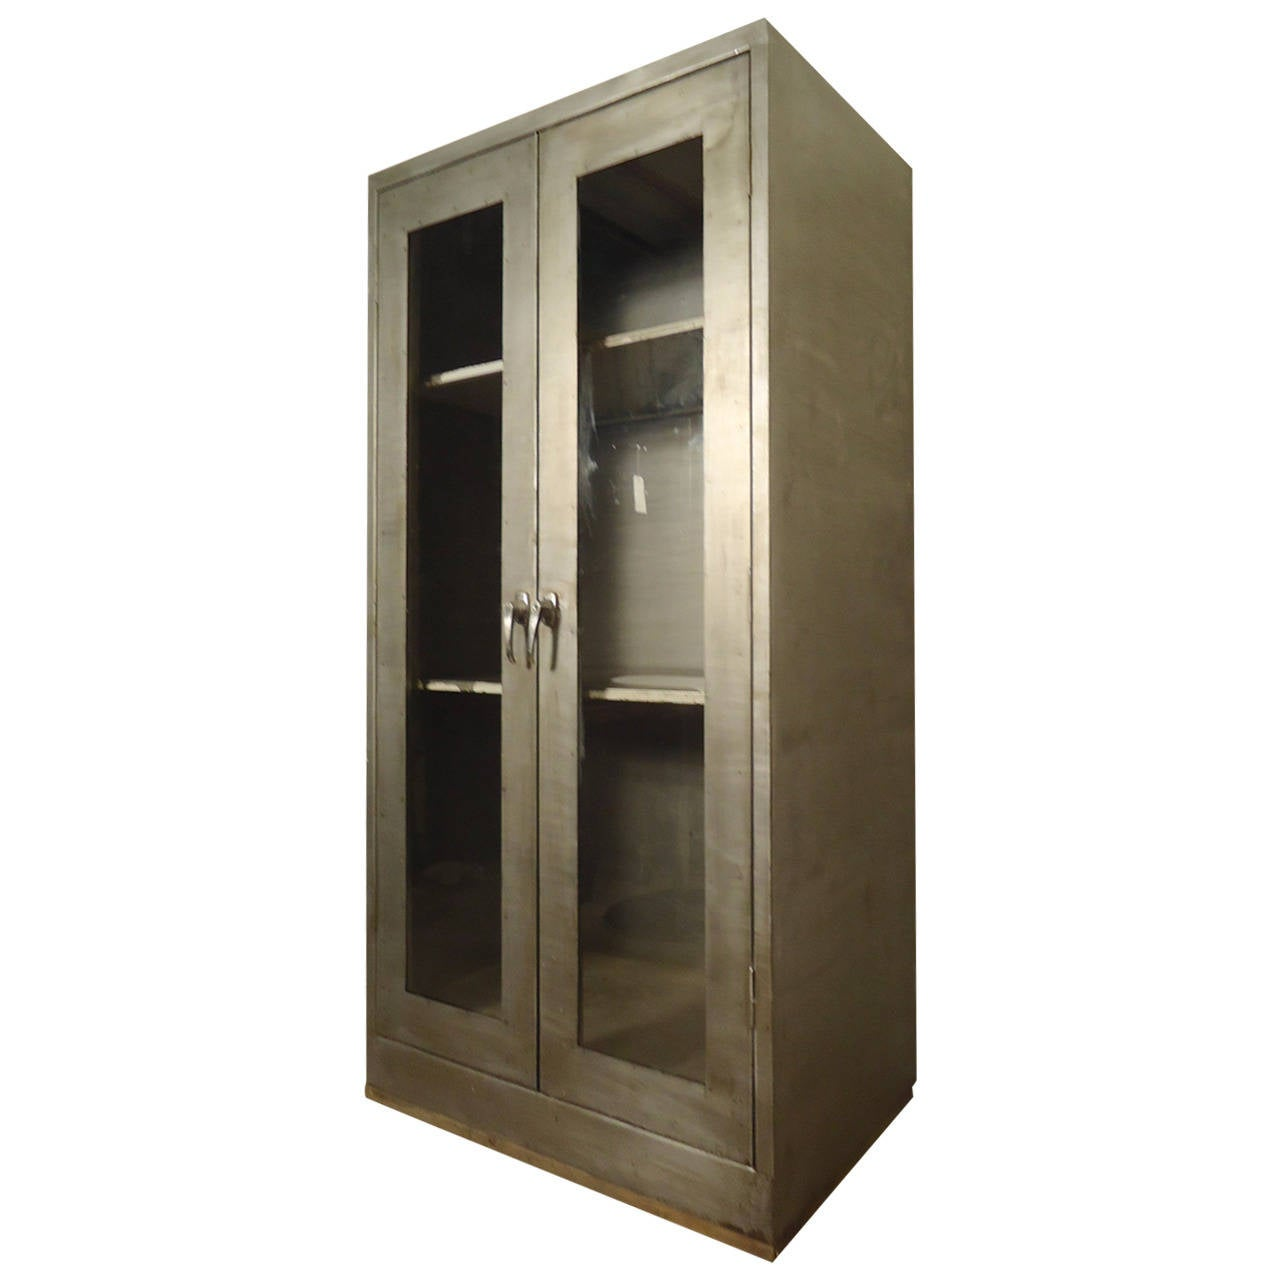 Large industrial double door cabinet for sale at 1stdibs for Oversized exterior doors for sale